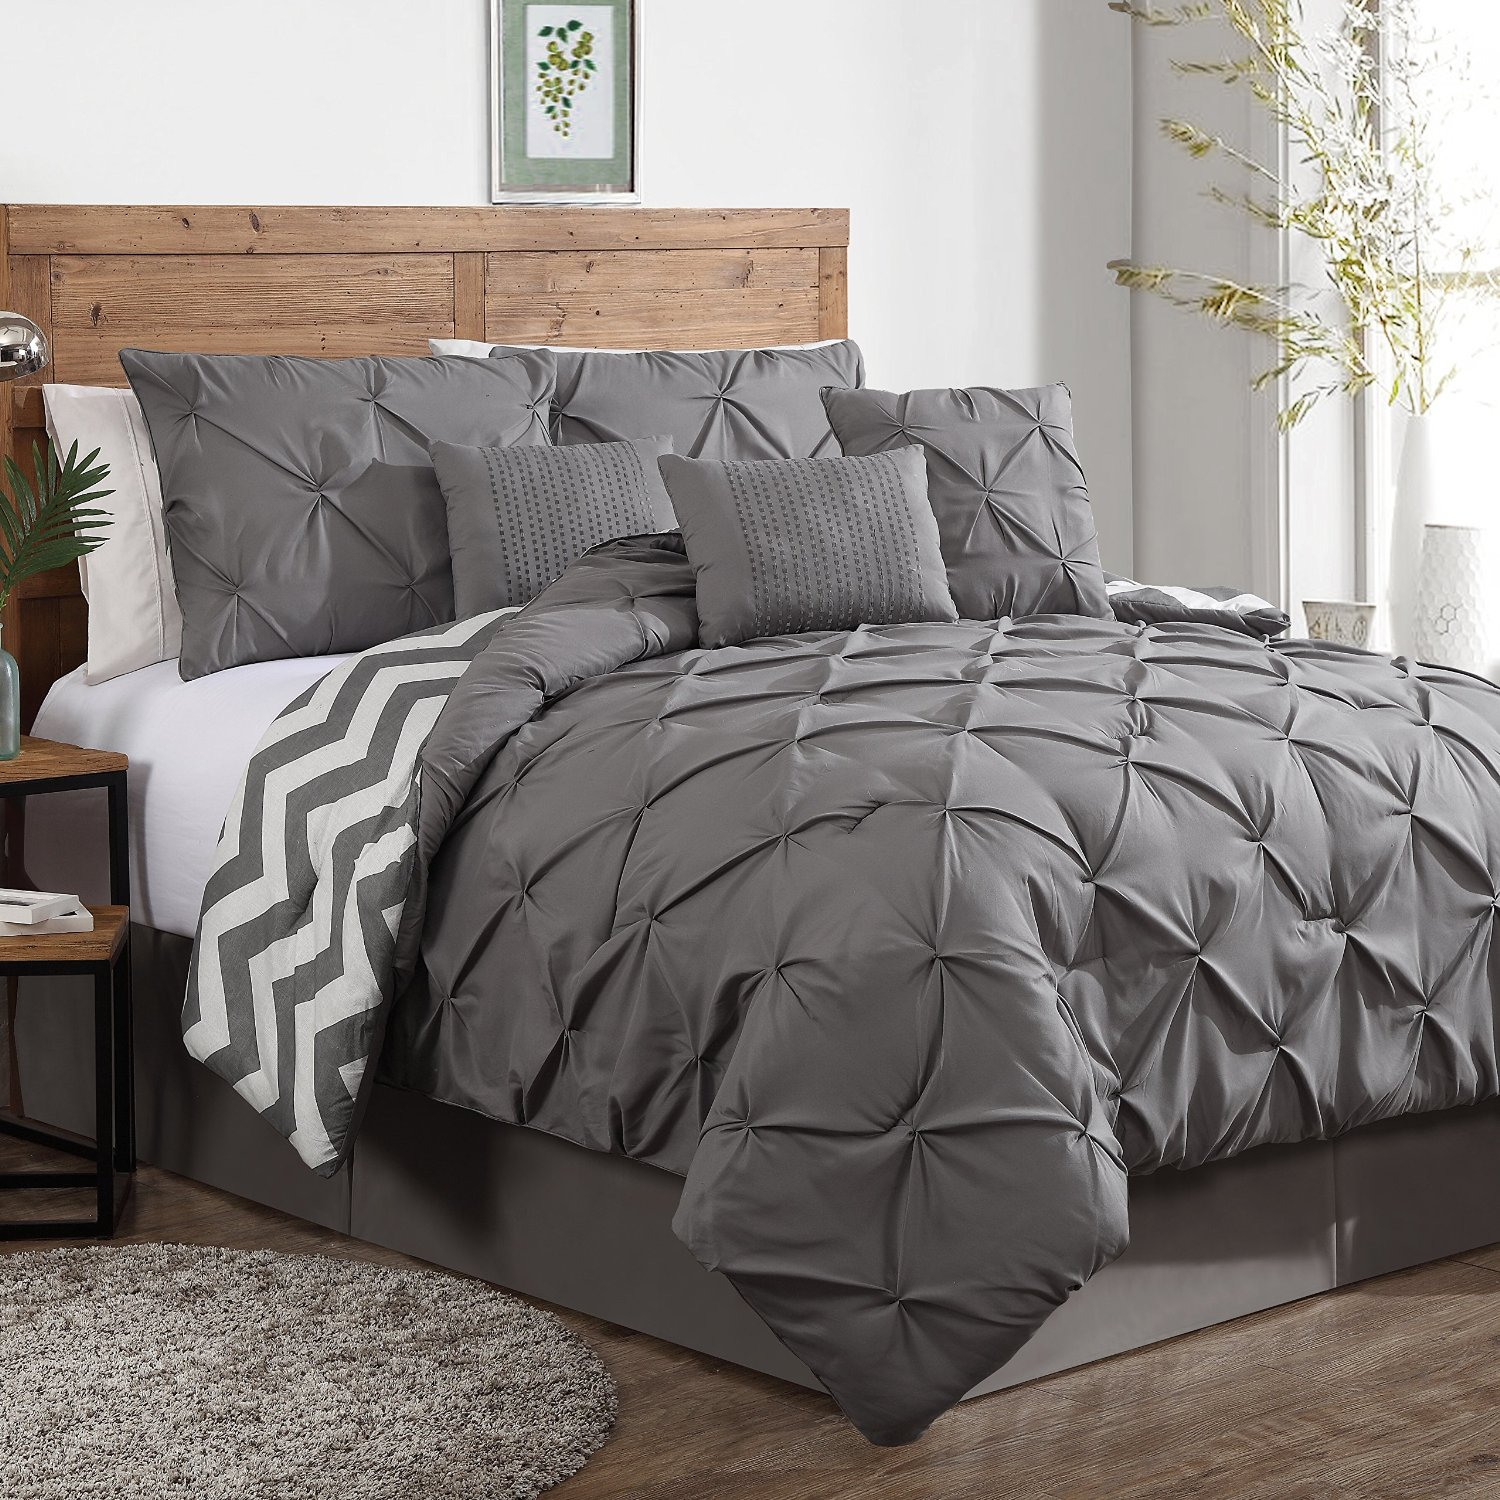 Best comforters sets for bedroom design with queen comforter sets